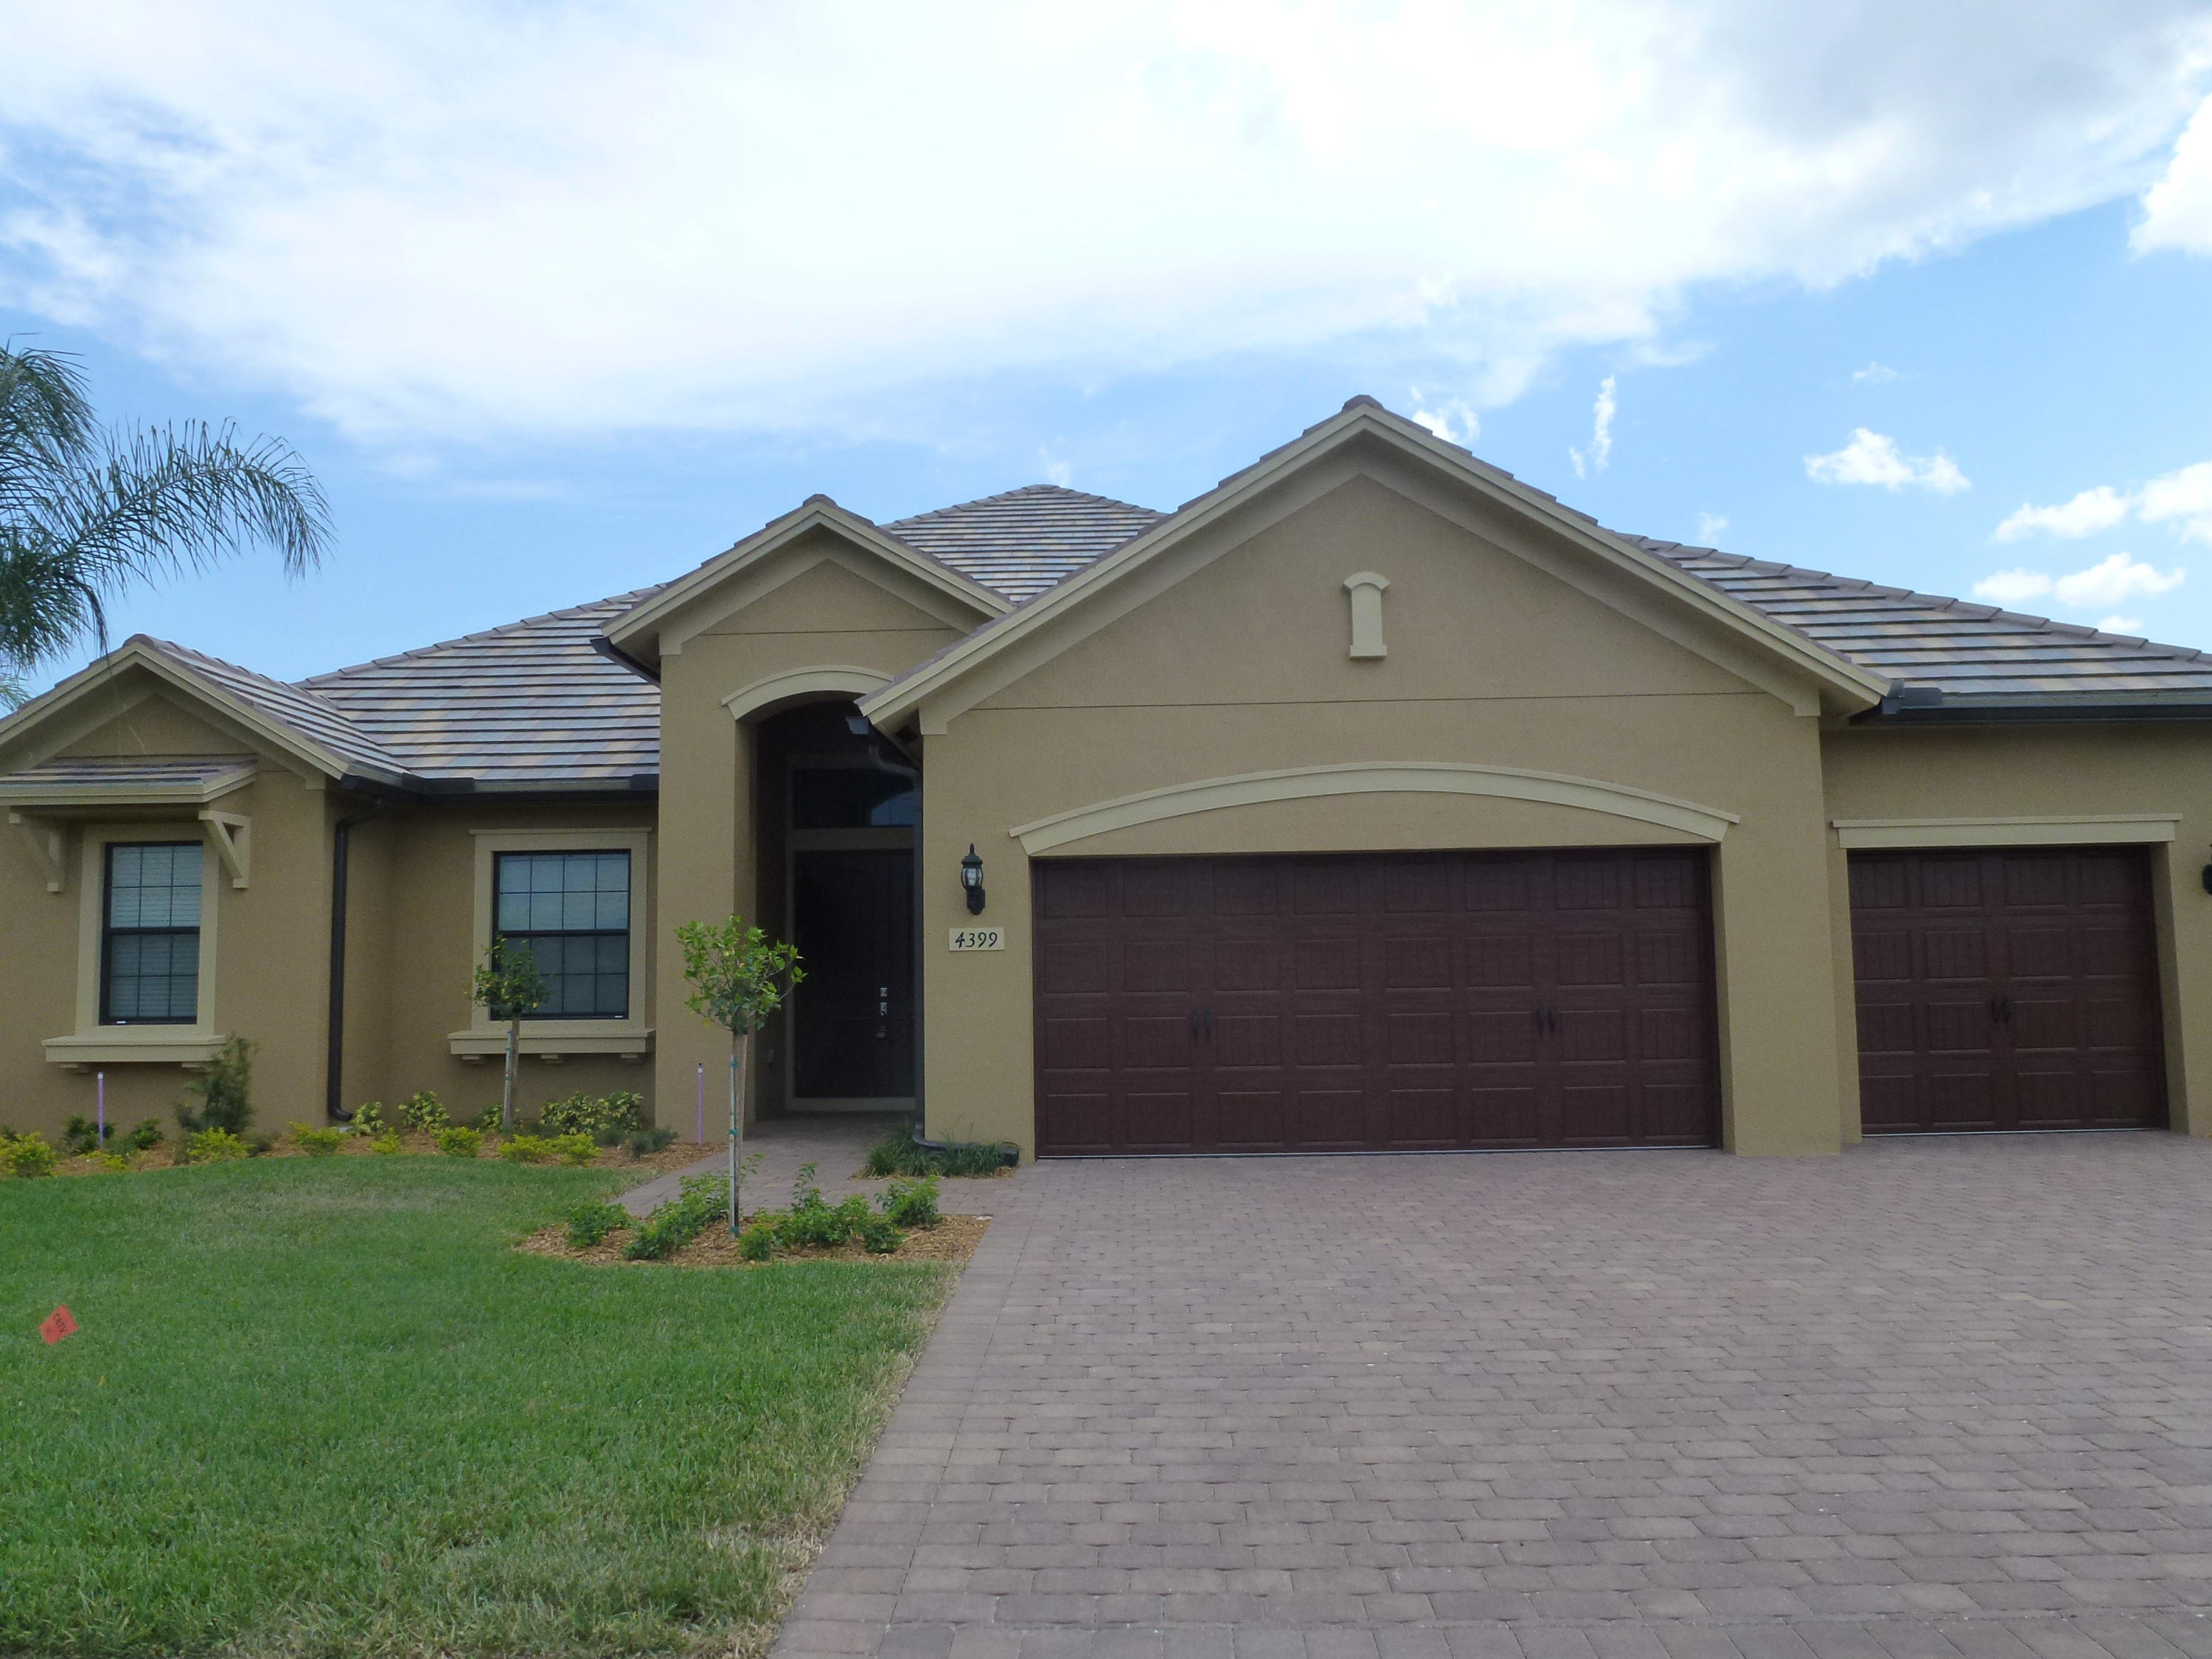 4399 Siena Circle  Wellington, FL 33414